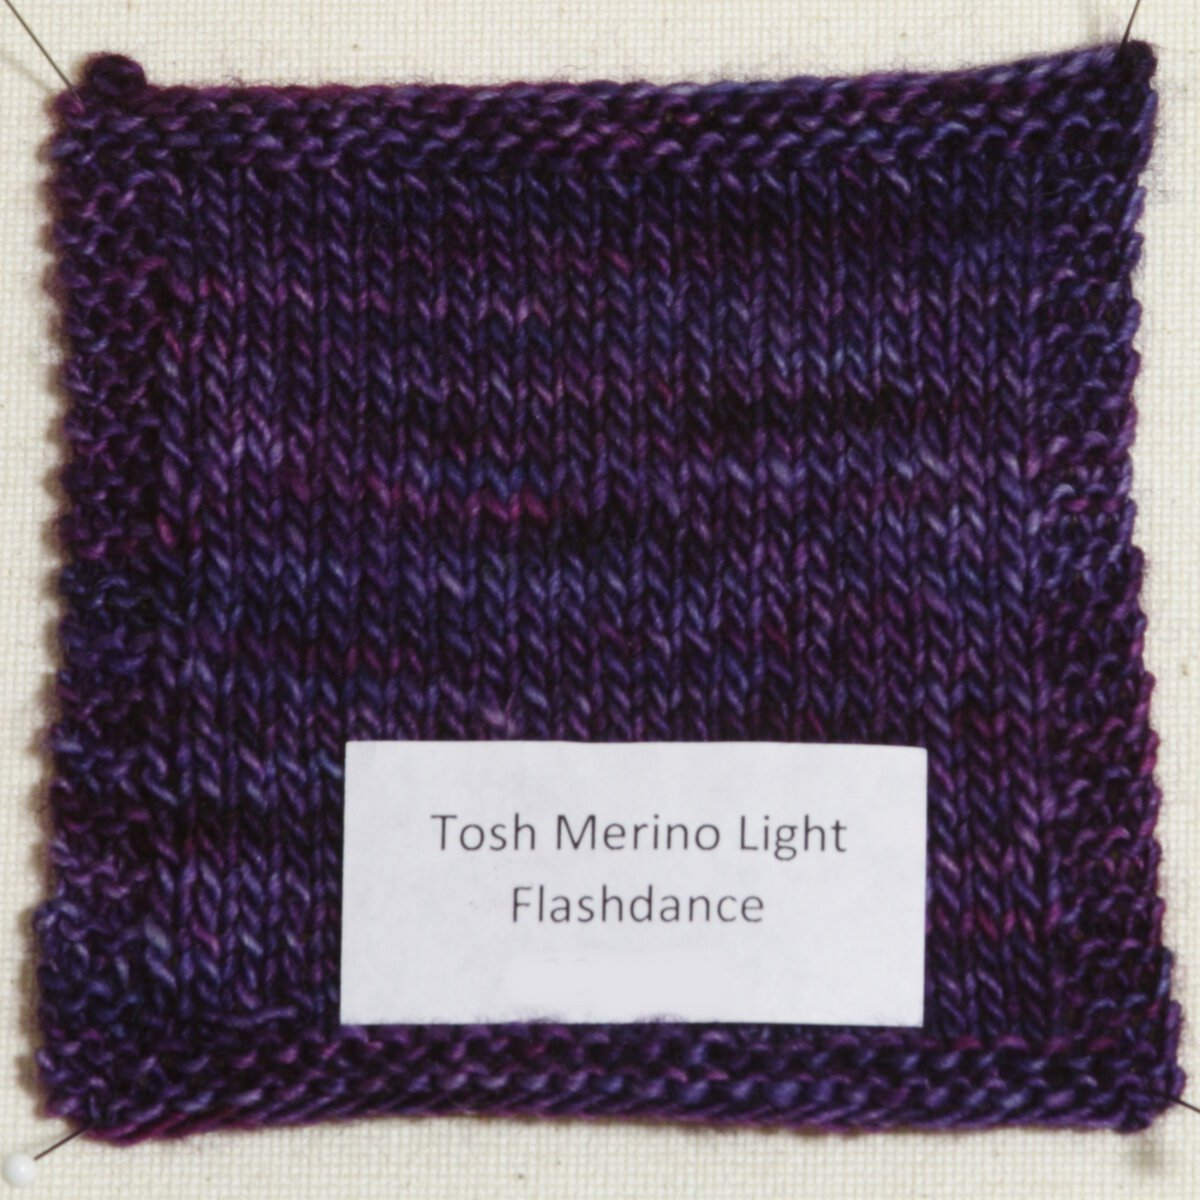 madelinetosh tosh merino light yarn flashdance at jimmy beans wool. Black Bedroom Furniture Sets. Home Design Ideas